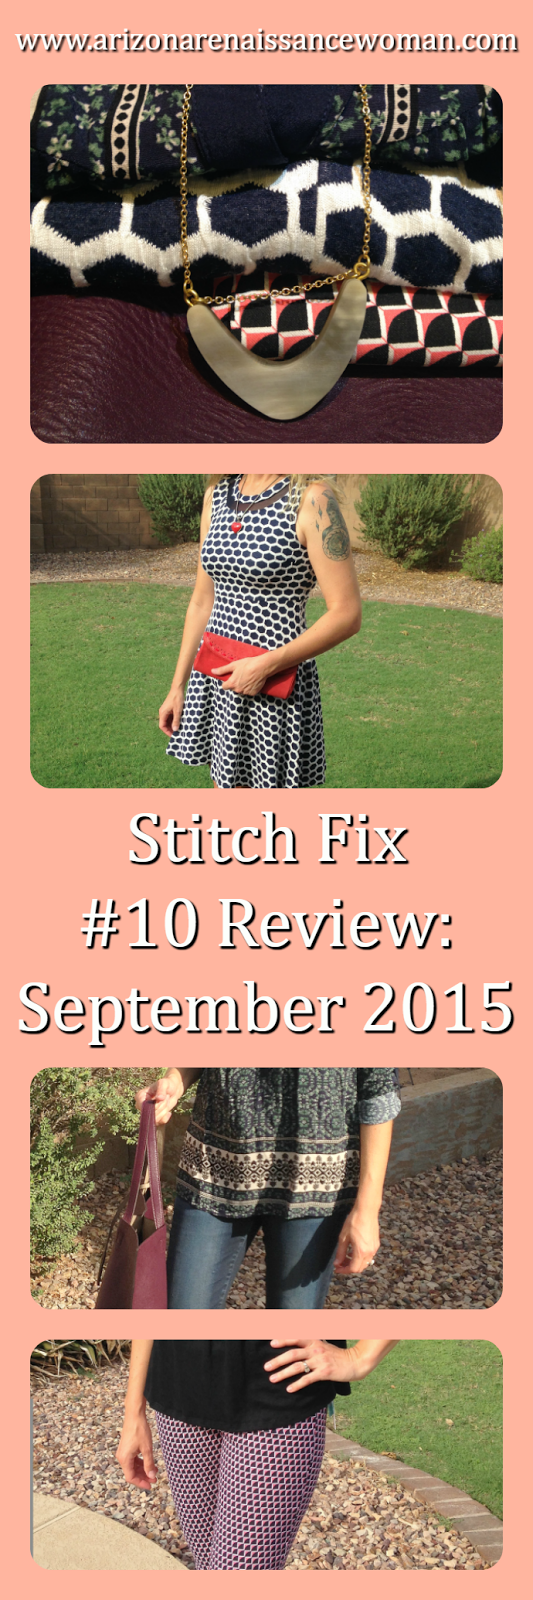 Stitch Fix #10 Review September 2015 Collage